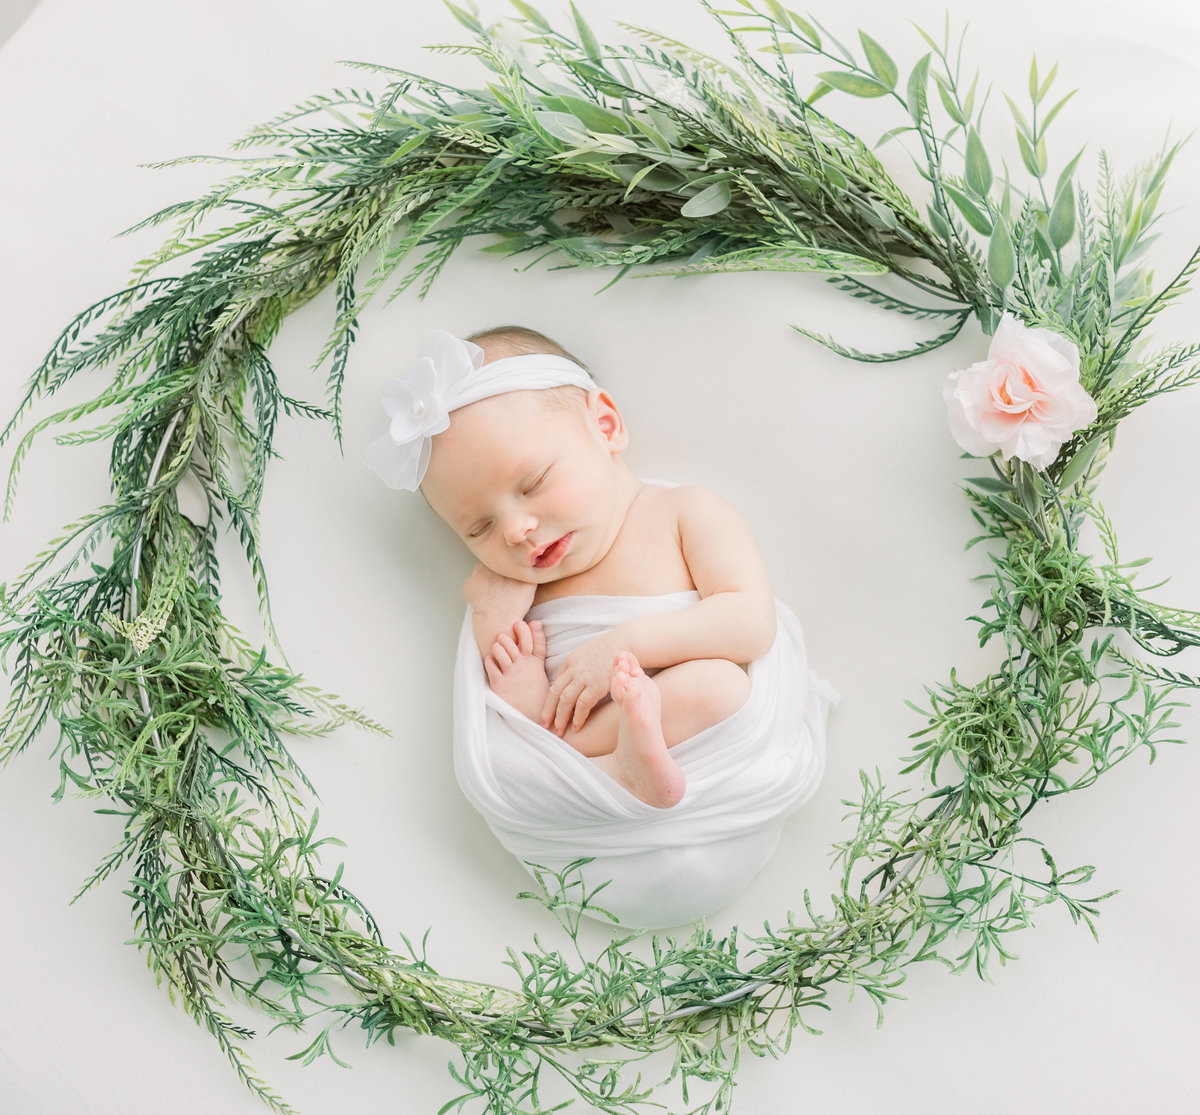 Round Rock Newborn Photography